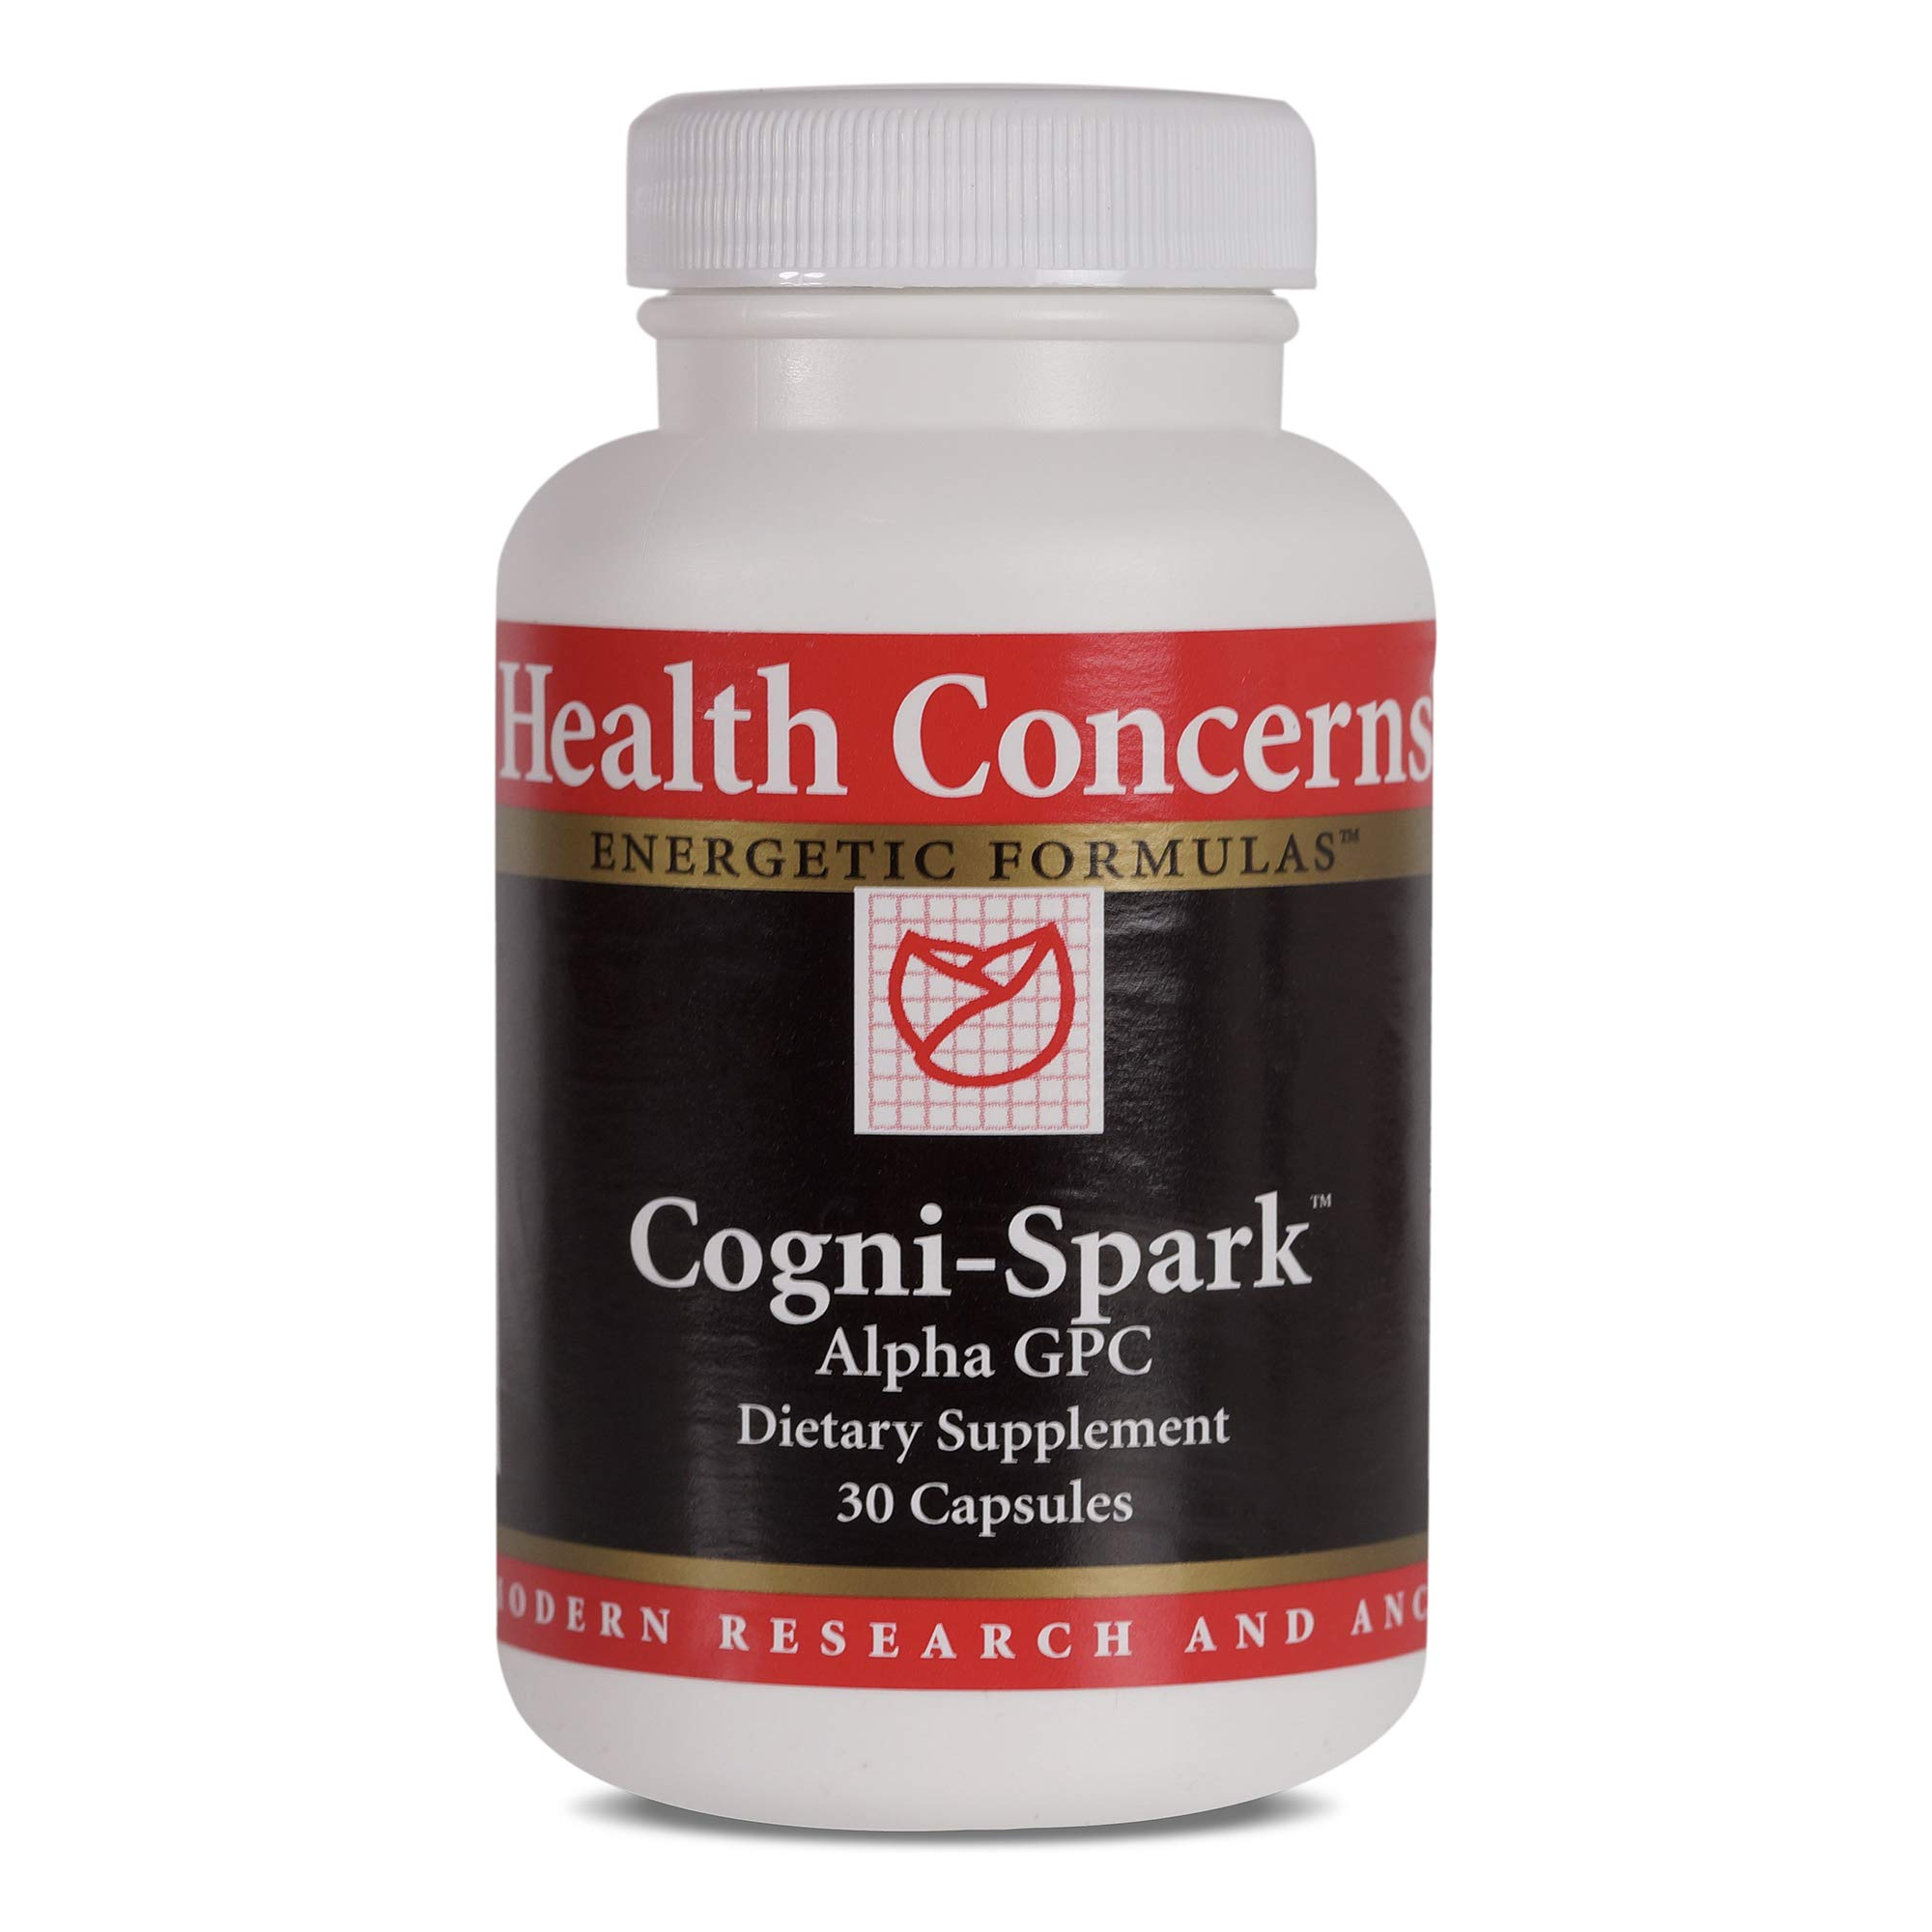 Health Concerns - Cogni-Spark - Alpha GPC Dietary Supplement - 30 Capsules